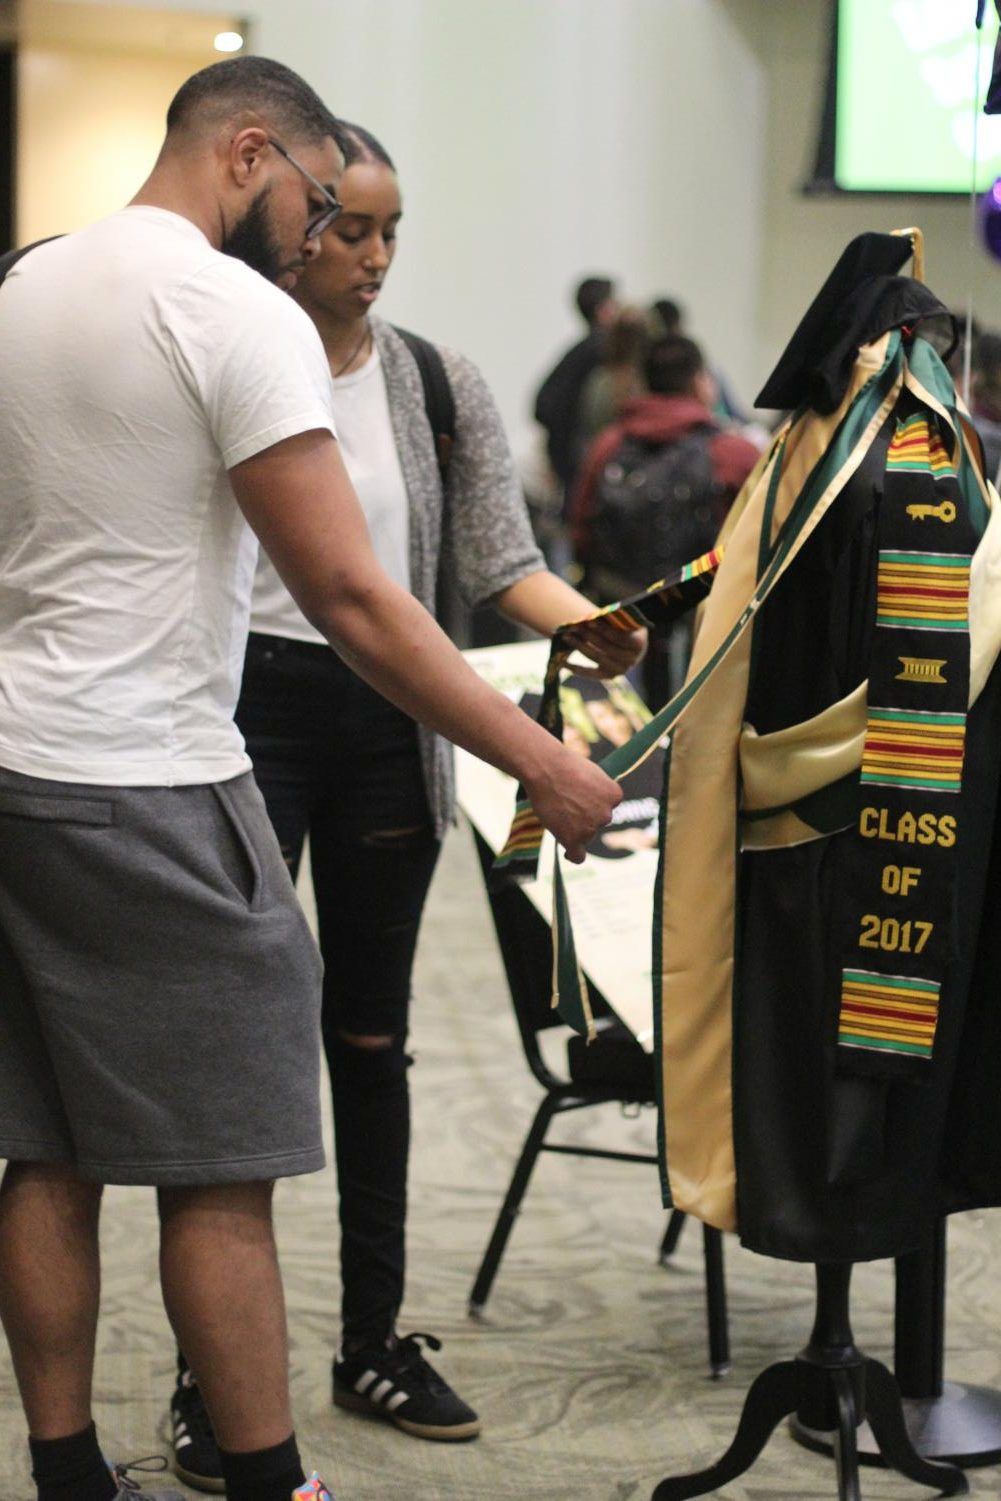 Seniors Tender Cooksie, left, and Yosan Zeweldi look at sashes to wear for graduation at Grad Fest on March 28, 2018.